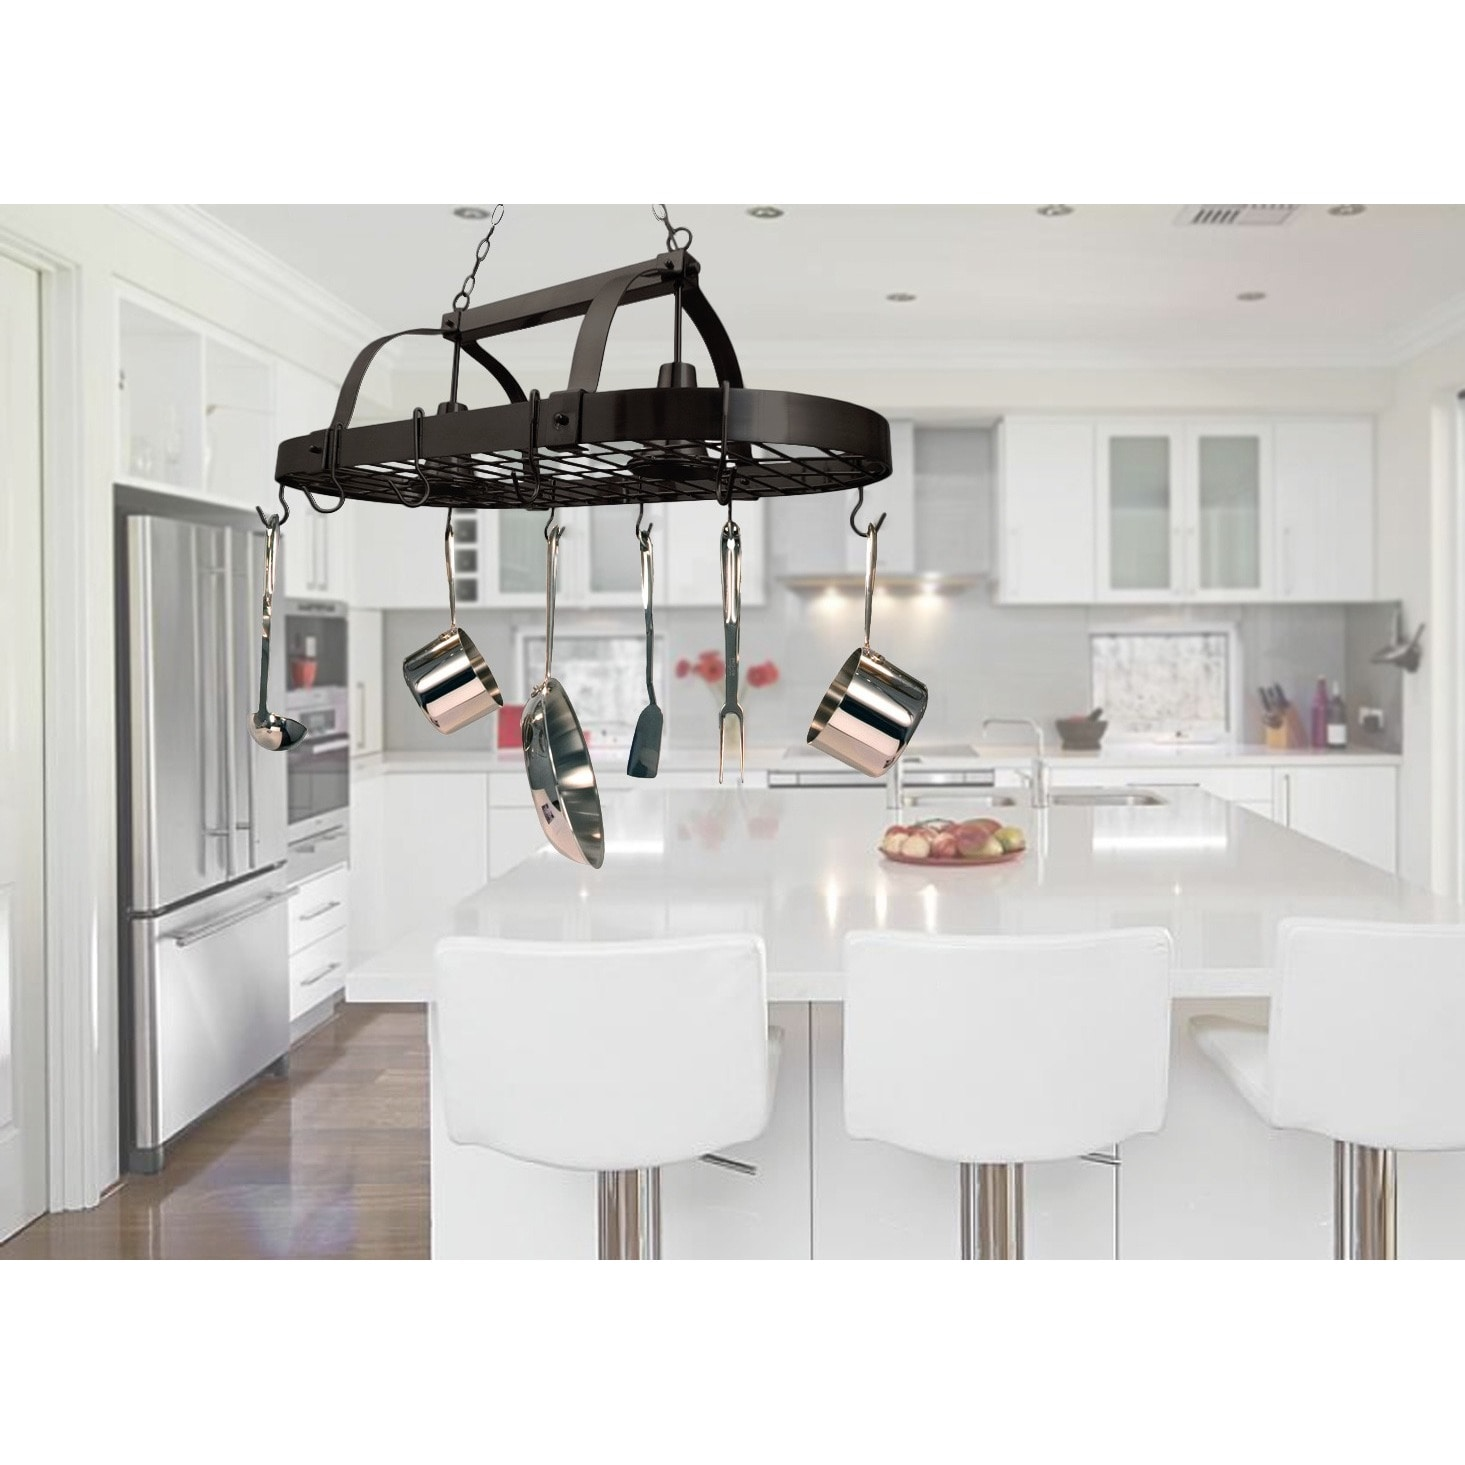 image nz with essentials product mighty judge pot rack lights kitchen at hanging ape